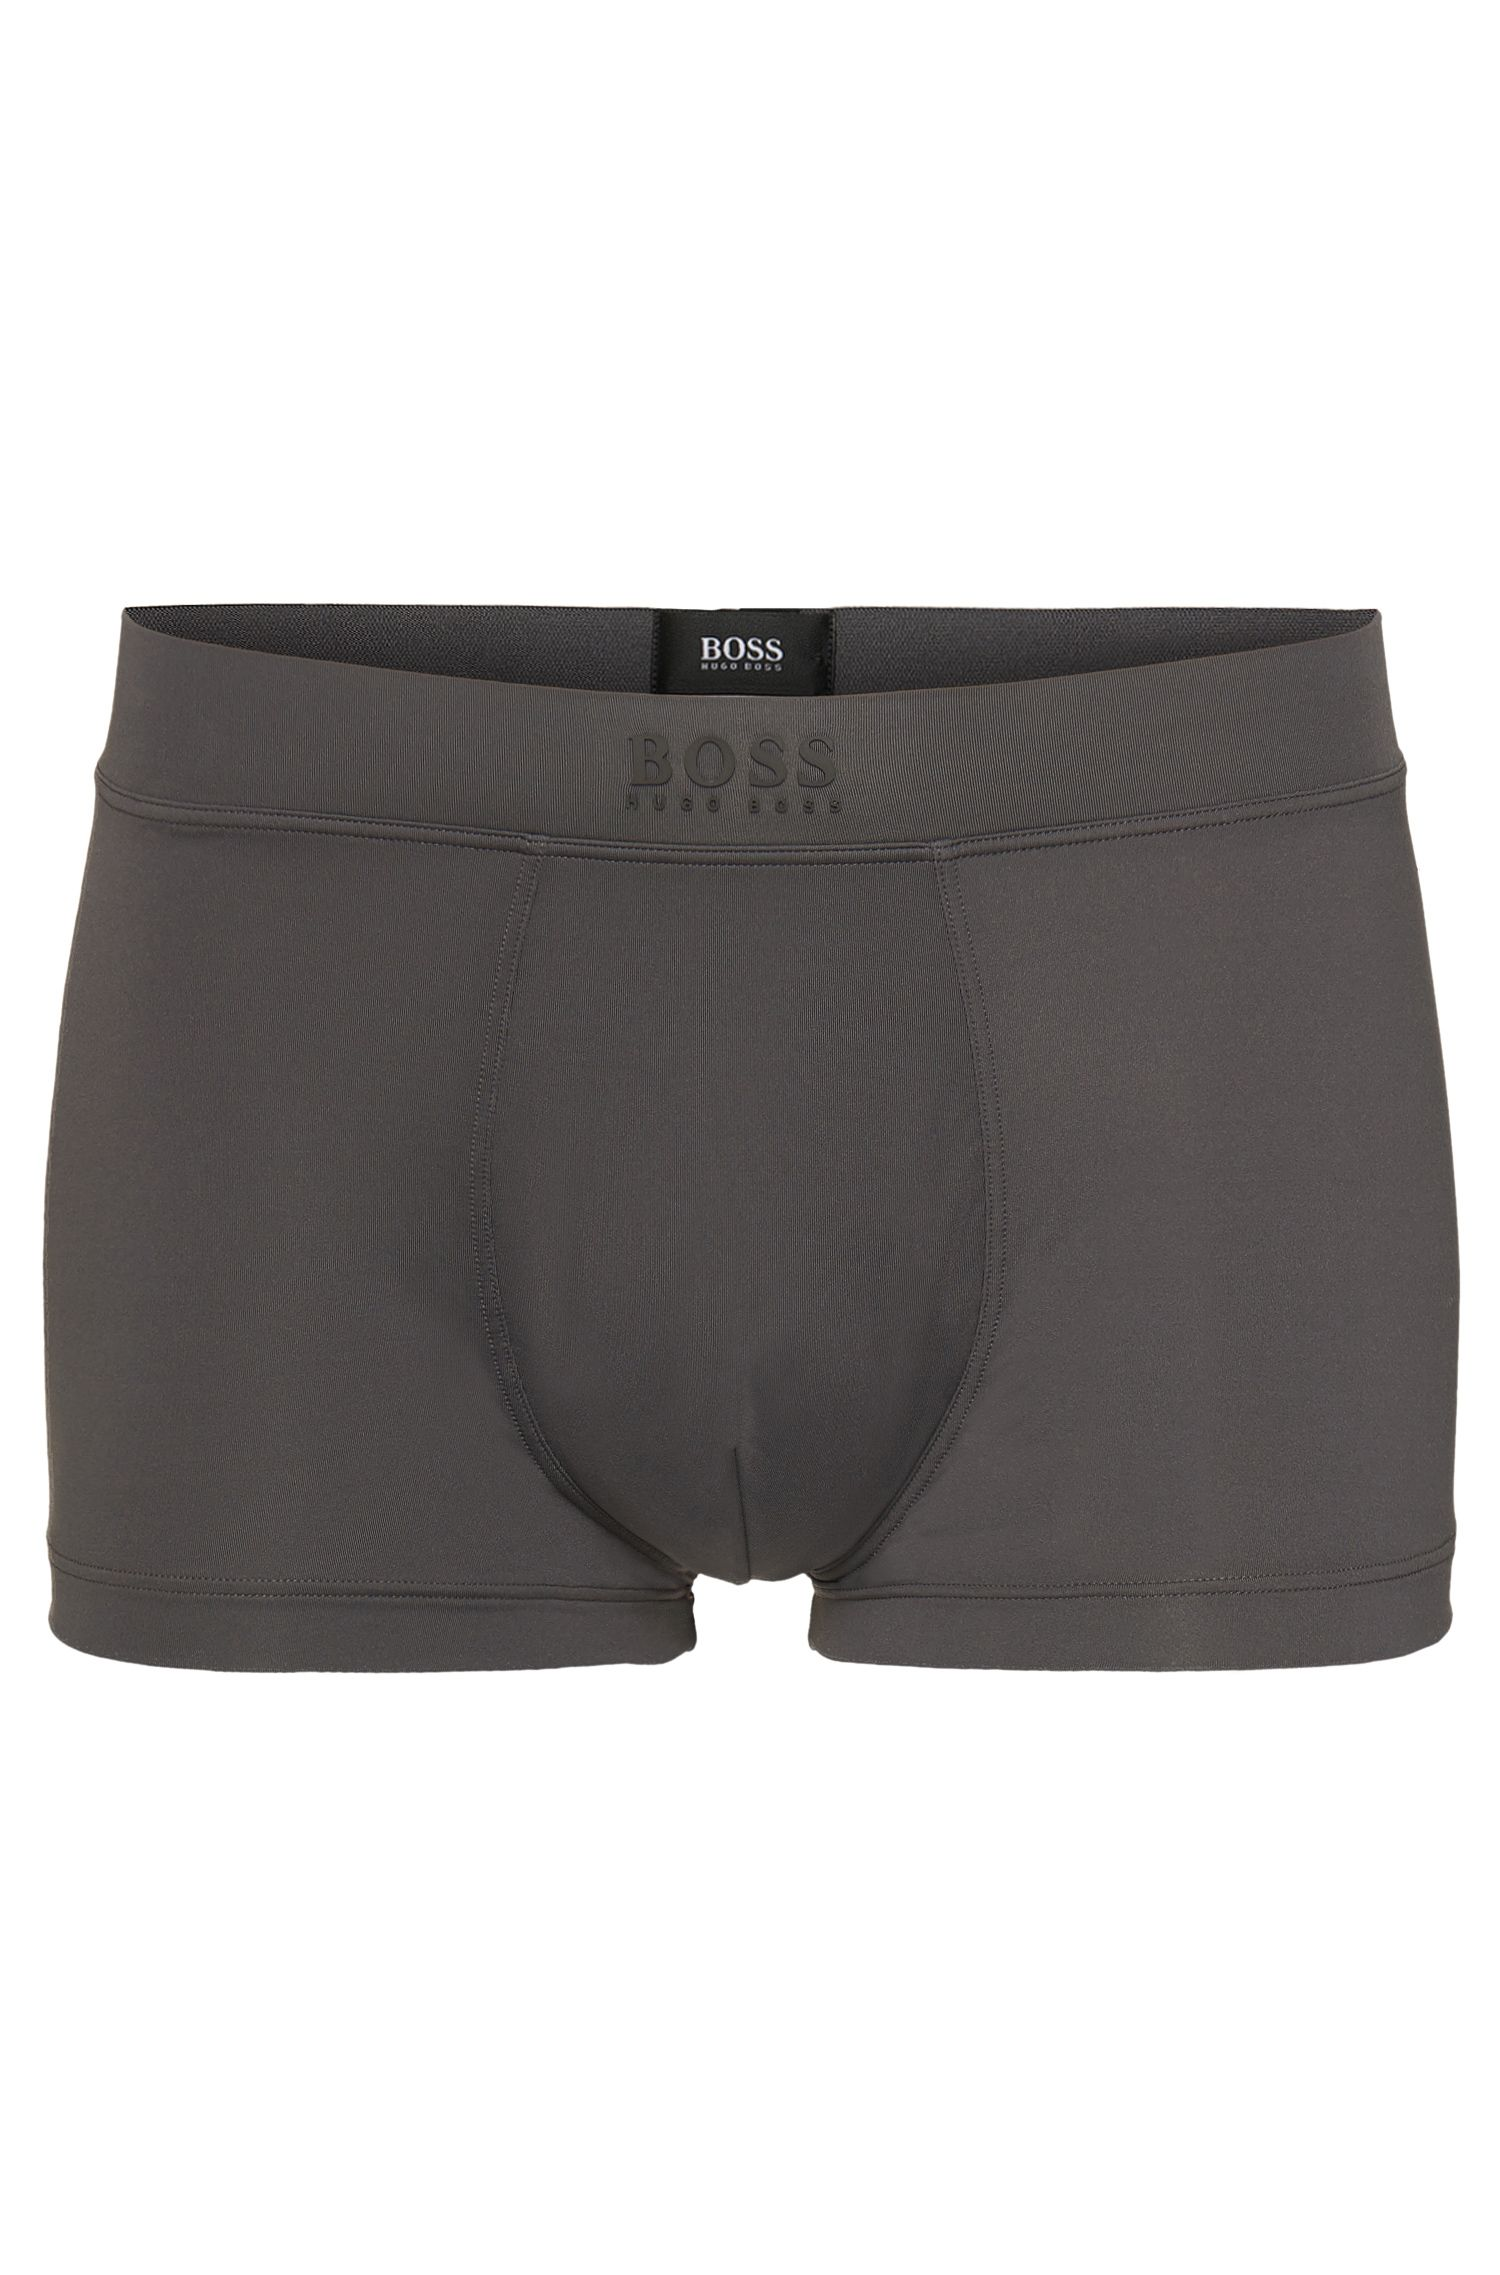 Boxers Regular Rise en tissu stretch, Gris